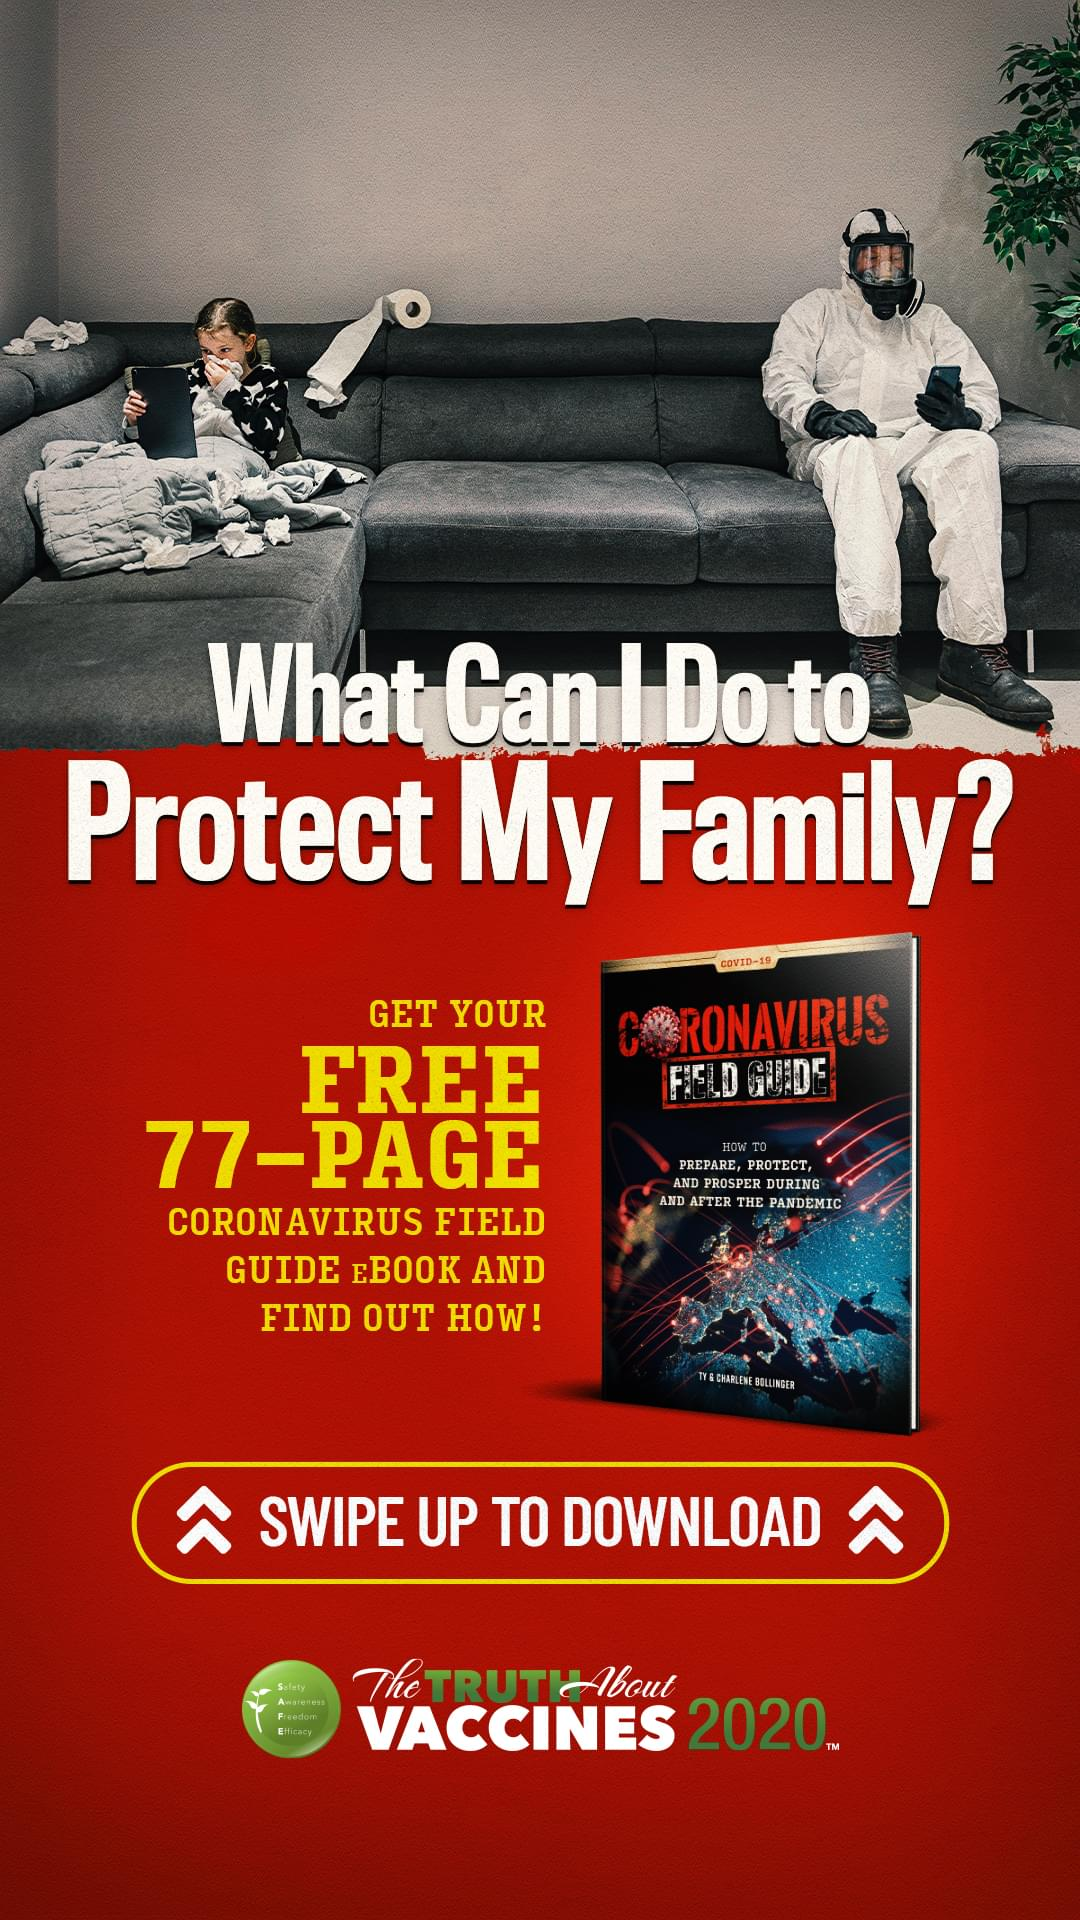 TTAV-eBook-Coronavirus_Field_Guide-Protect_Family-IG-1080x1920-Swipe-min